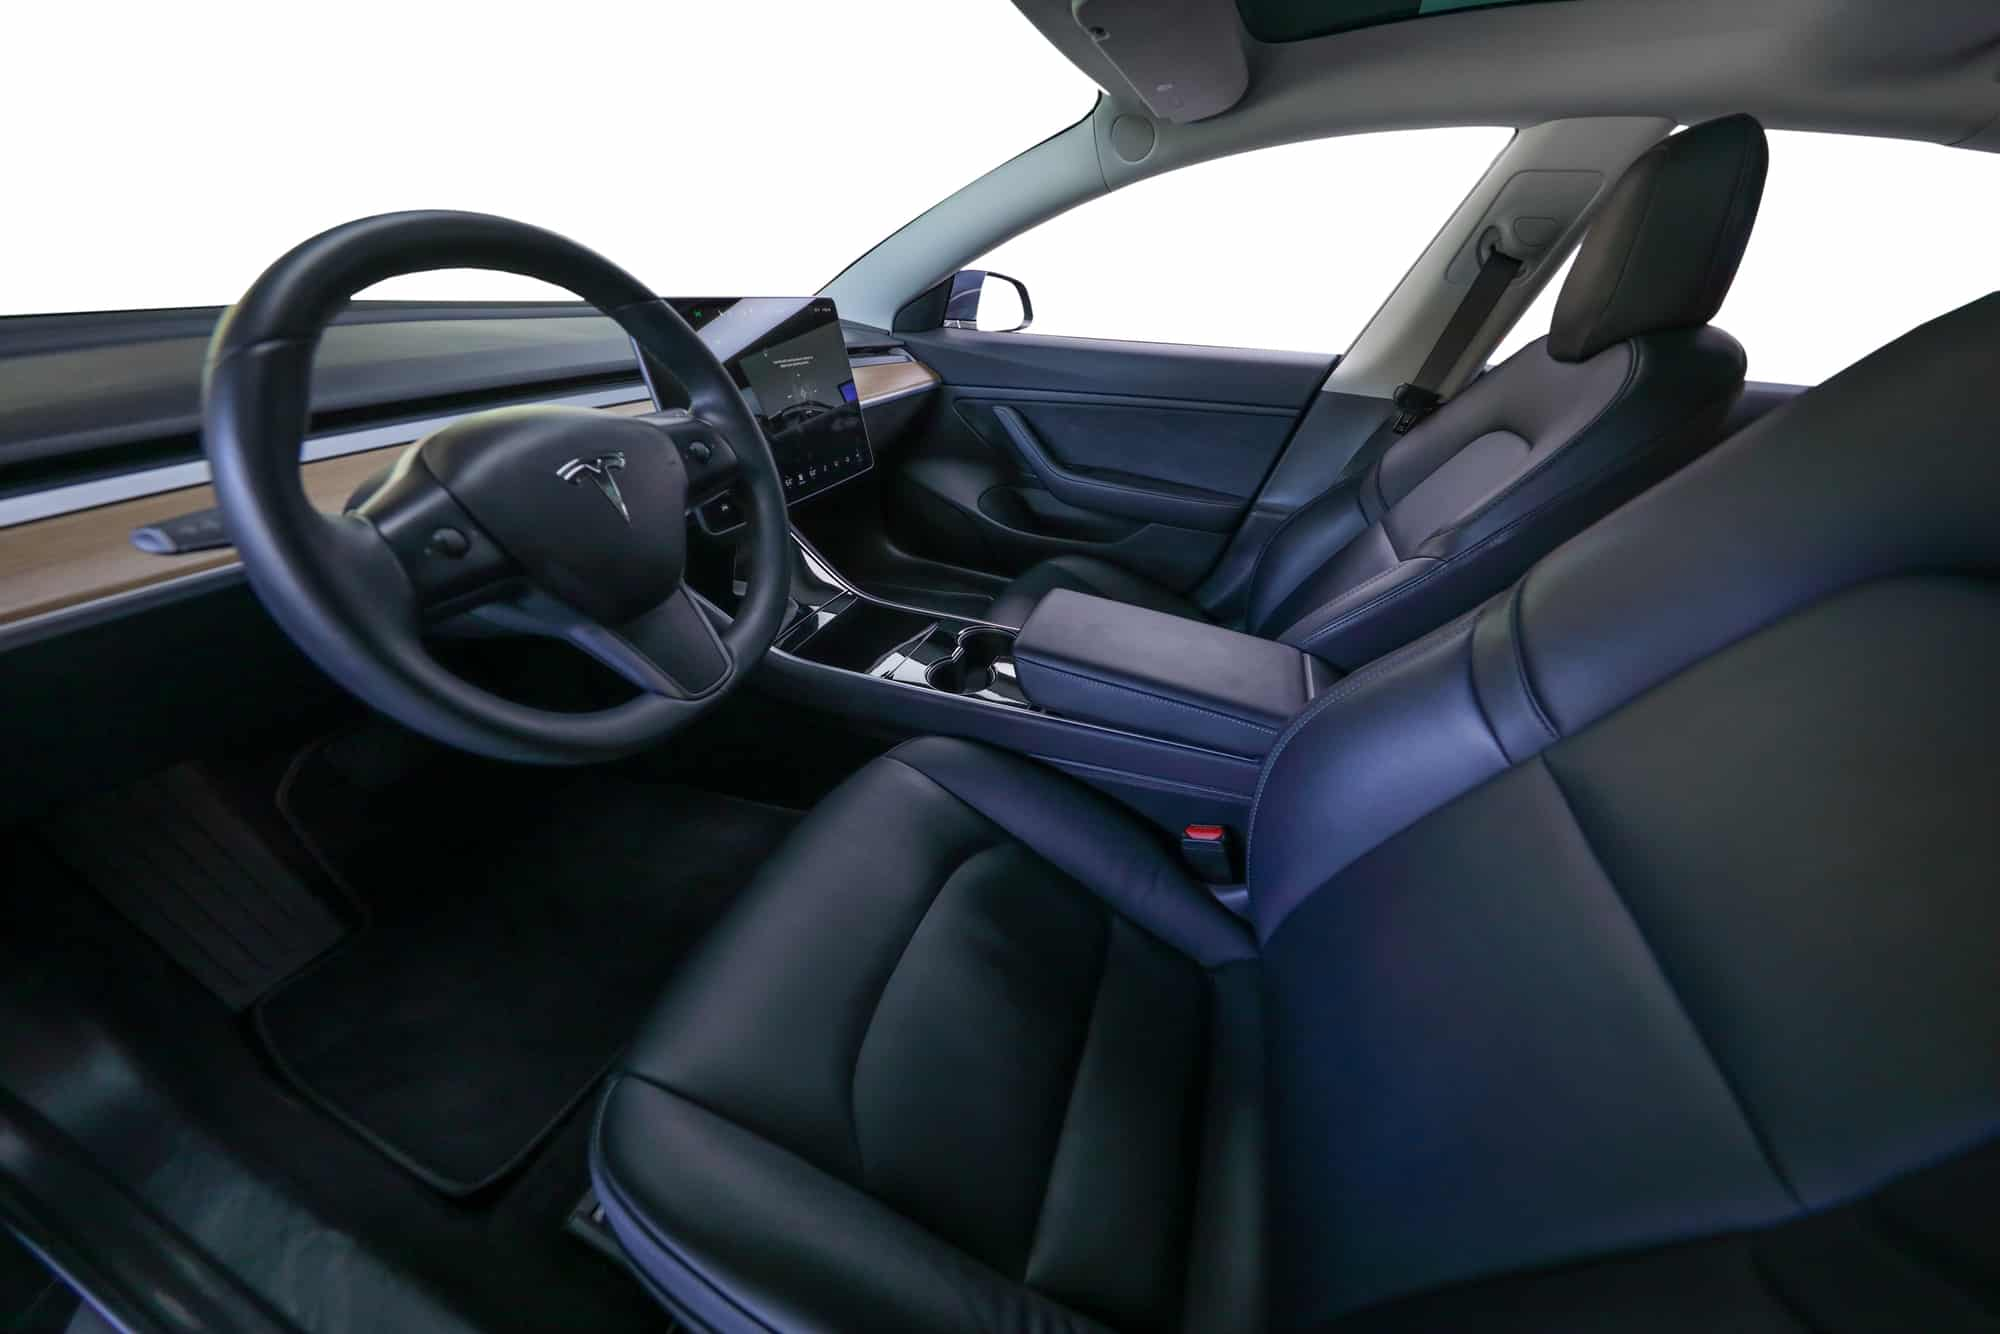 The seats within a Tesla Model 3